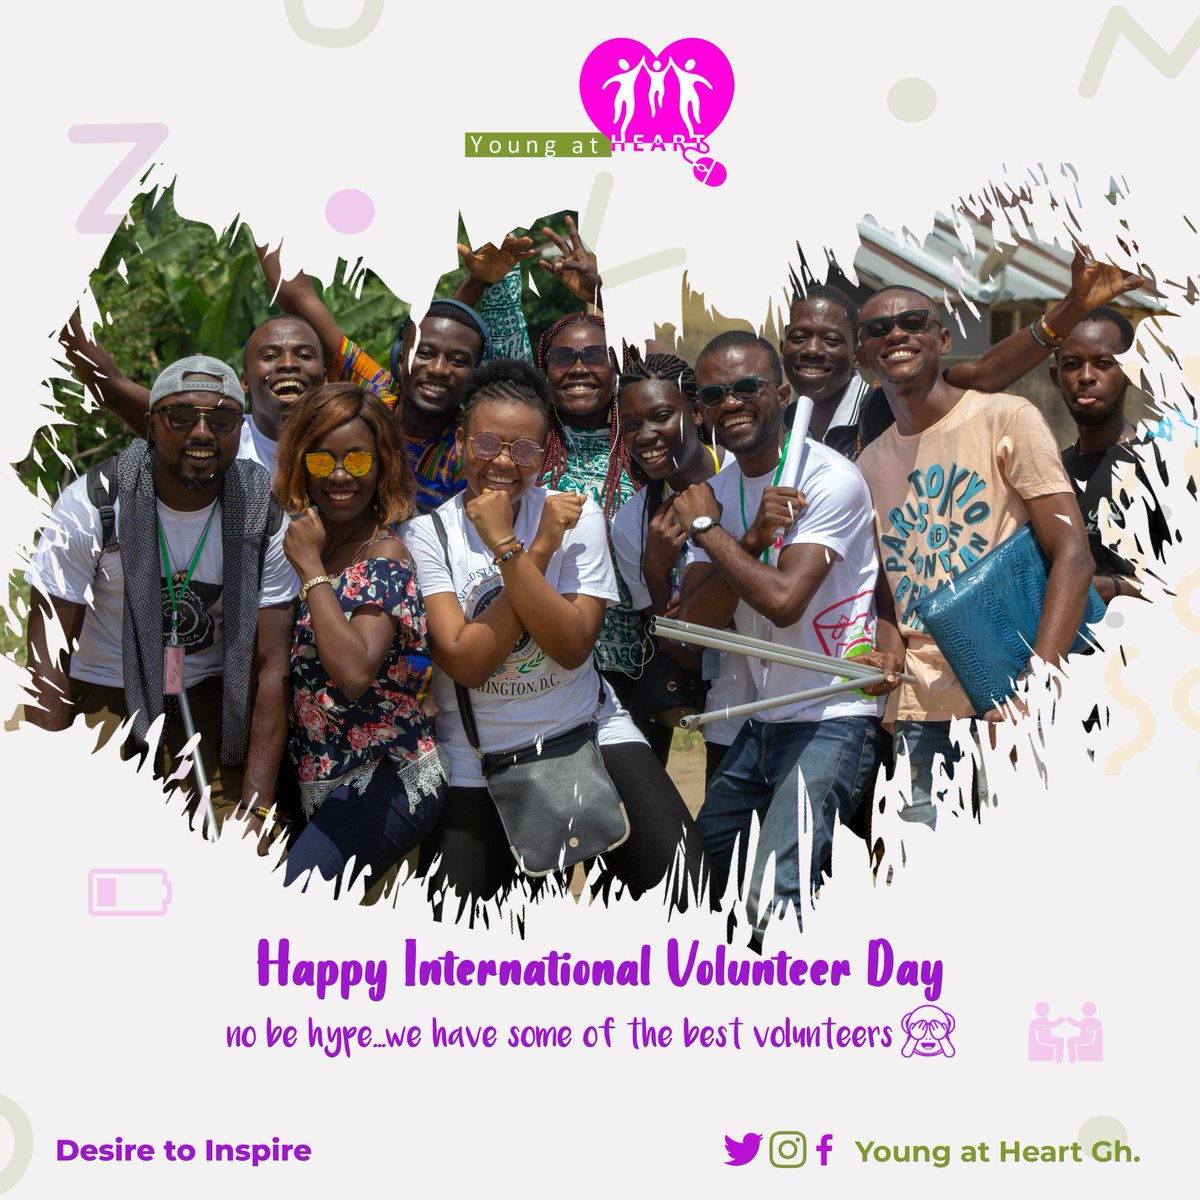 They are our most cherished resource and we owe a great deal of our impact over the years, to their passionate and endearing spirit! @youngatheartgh celebrates all our volunteers! #InternationalVolunteerDay2019 #InternationalVolunteerDay #IVD2019